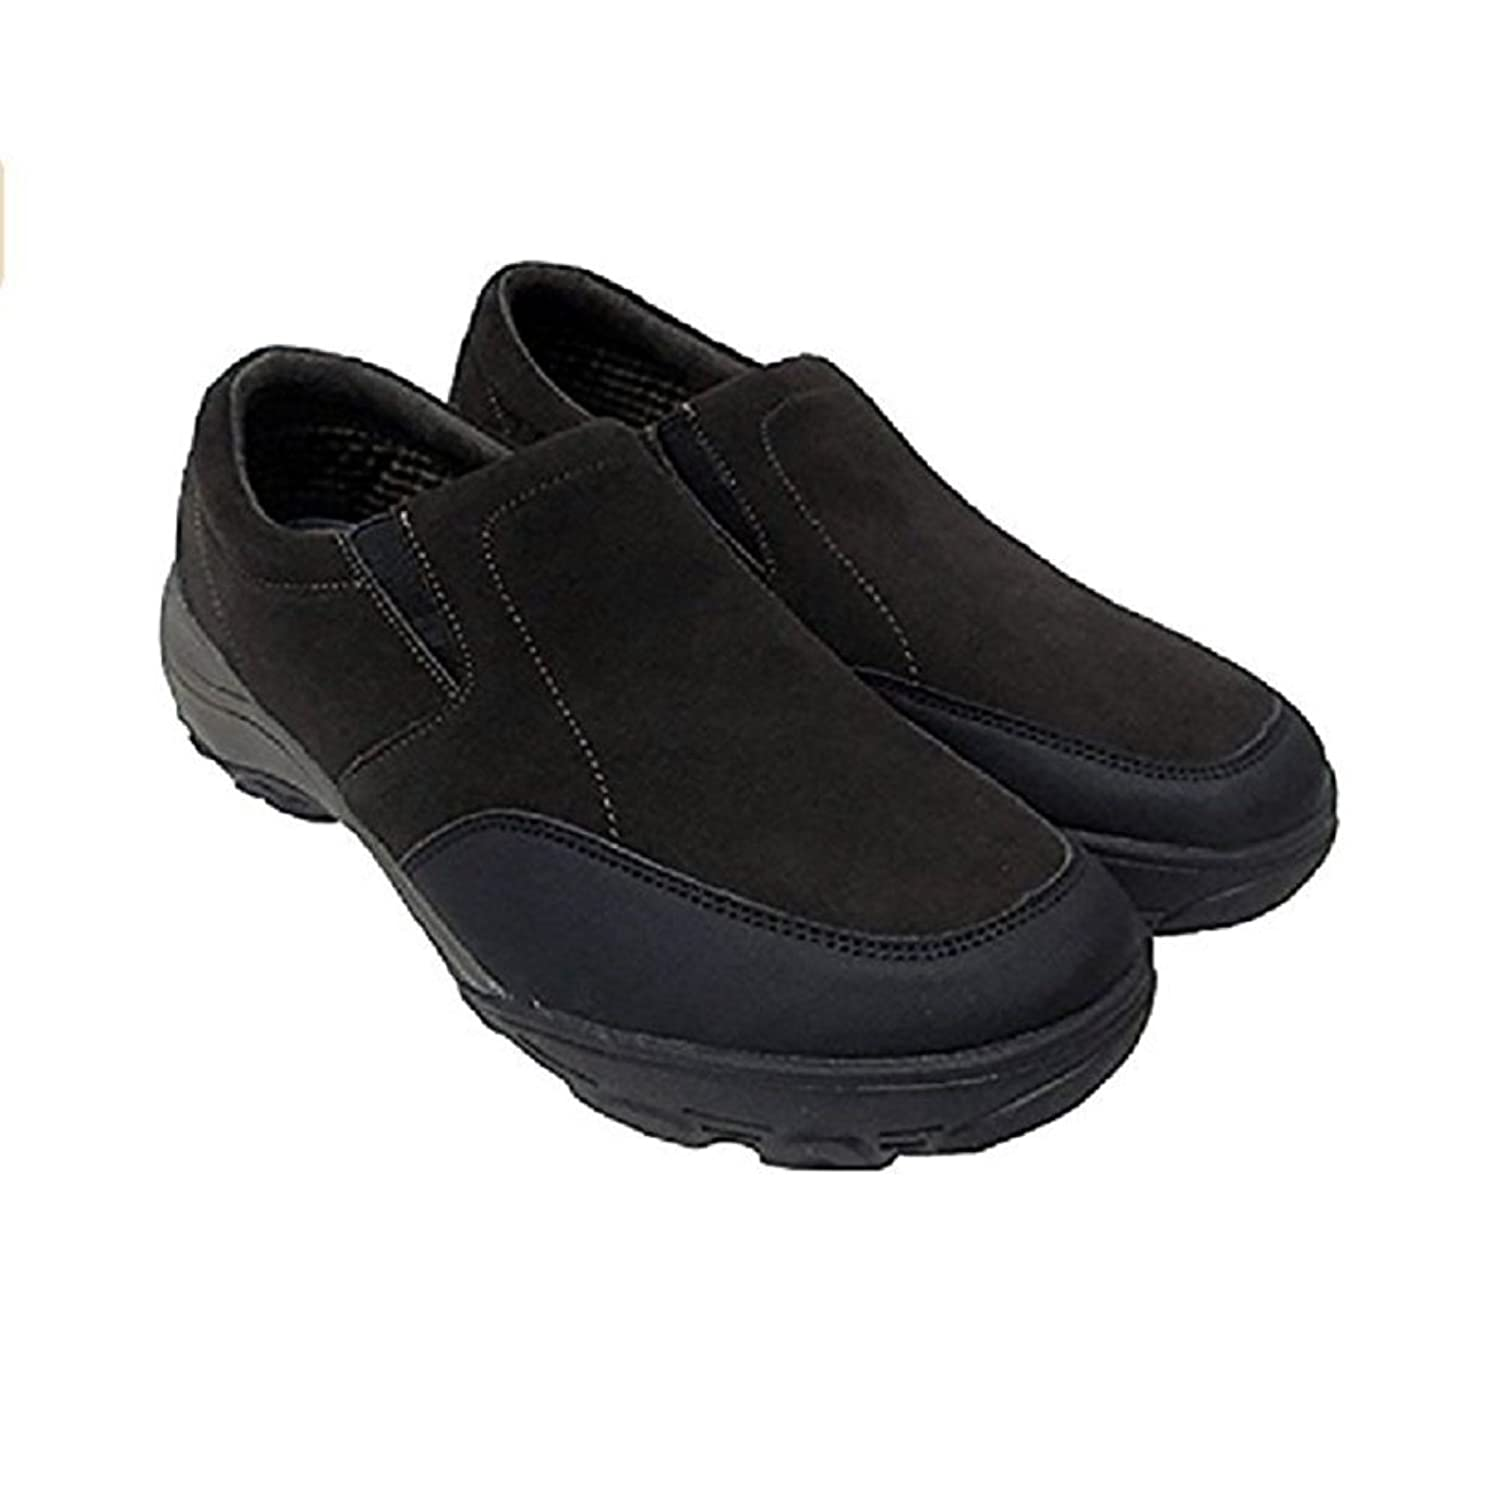 How to distribute tight leather shoes 85